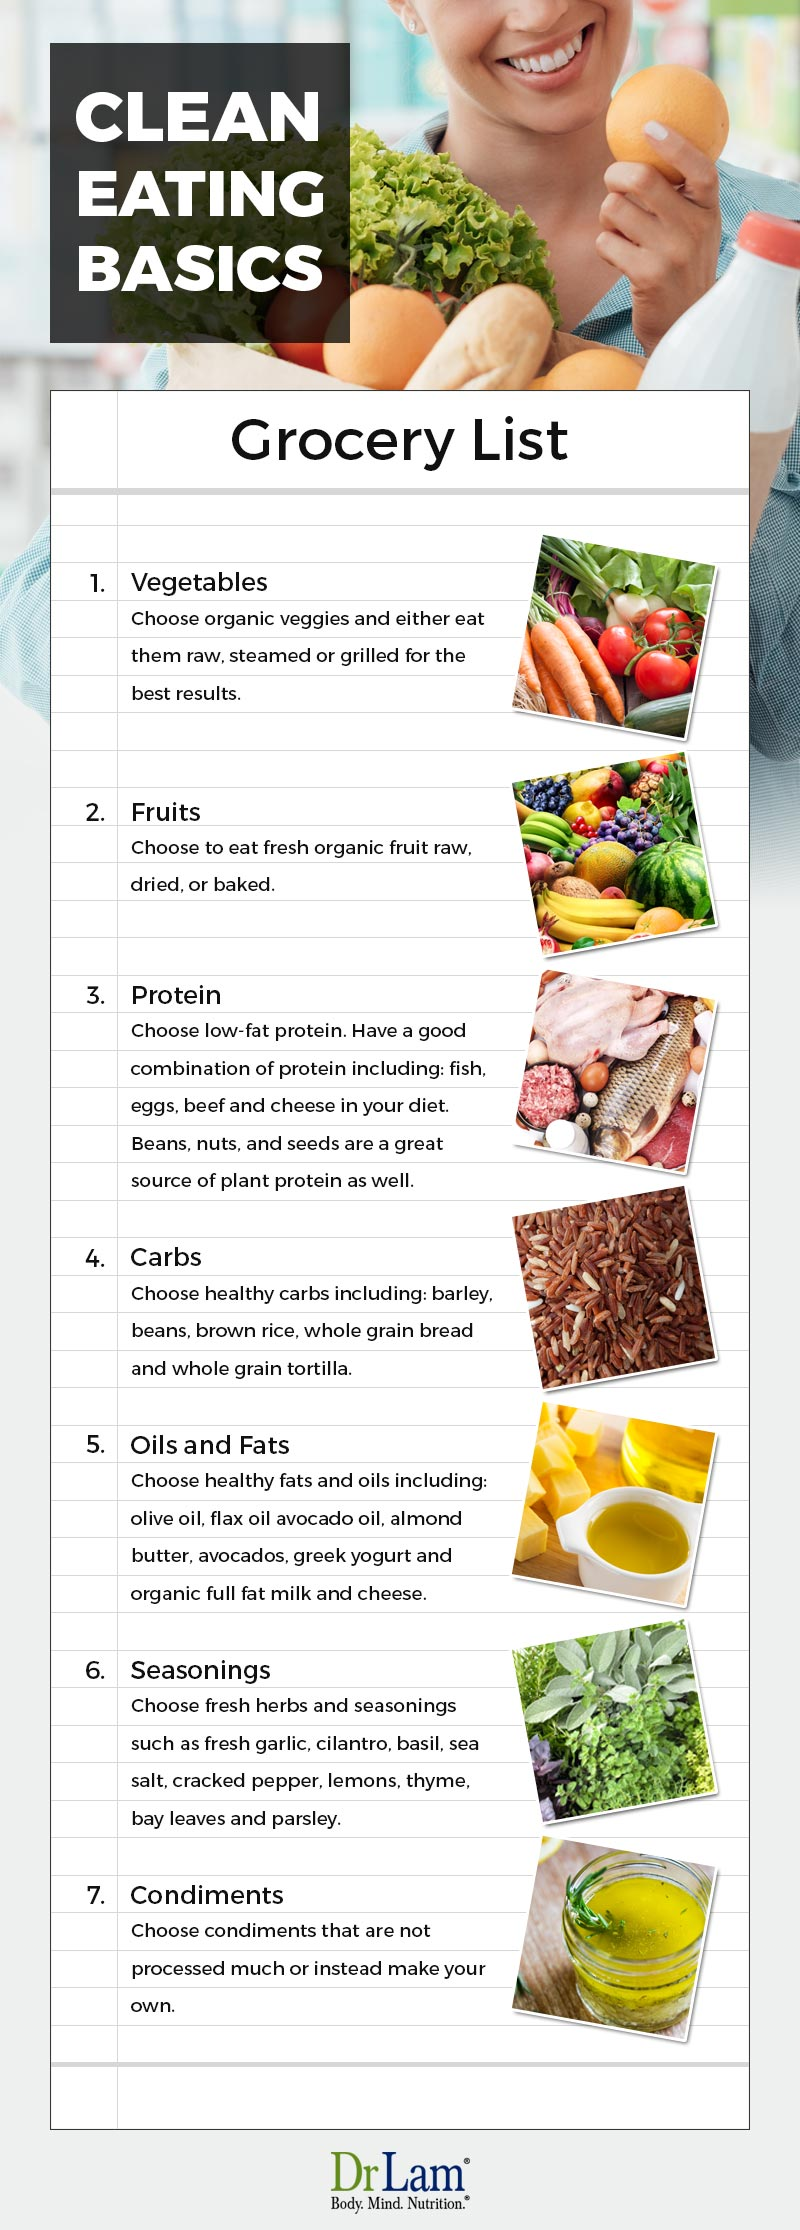 Check out this easy to understand infographic about grocery list in clean eating basics